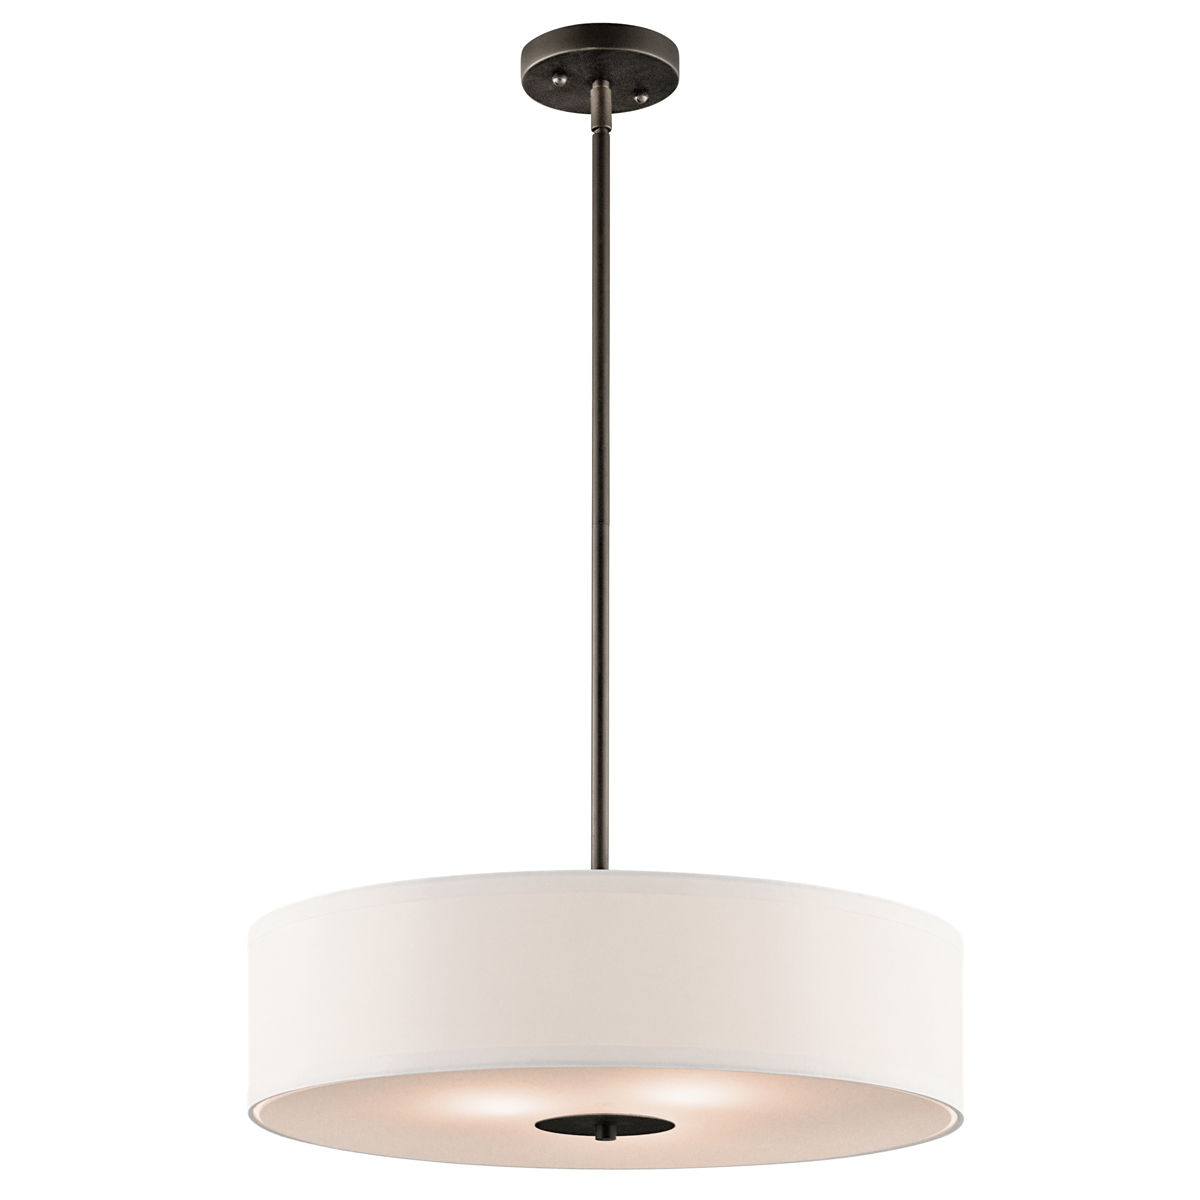 Kichler 42121ni Brushed Nickel 3 Light 20 Wide Convertible Pendant Semi Flush Ceiling Fixture With Drum Fabric Shade Lightingdirect Com